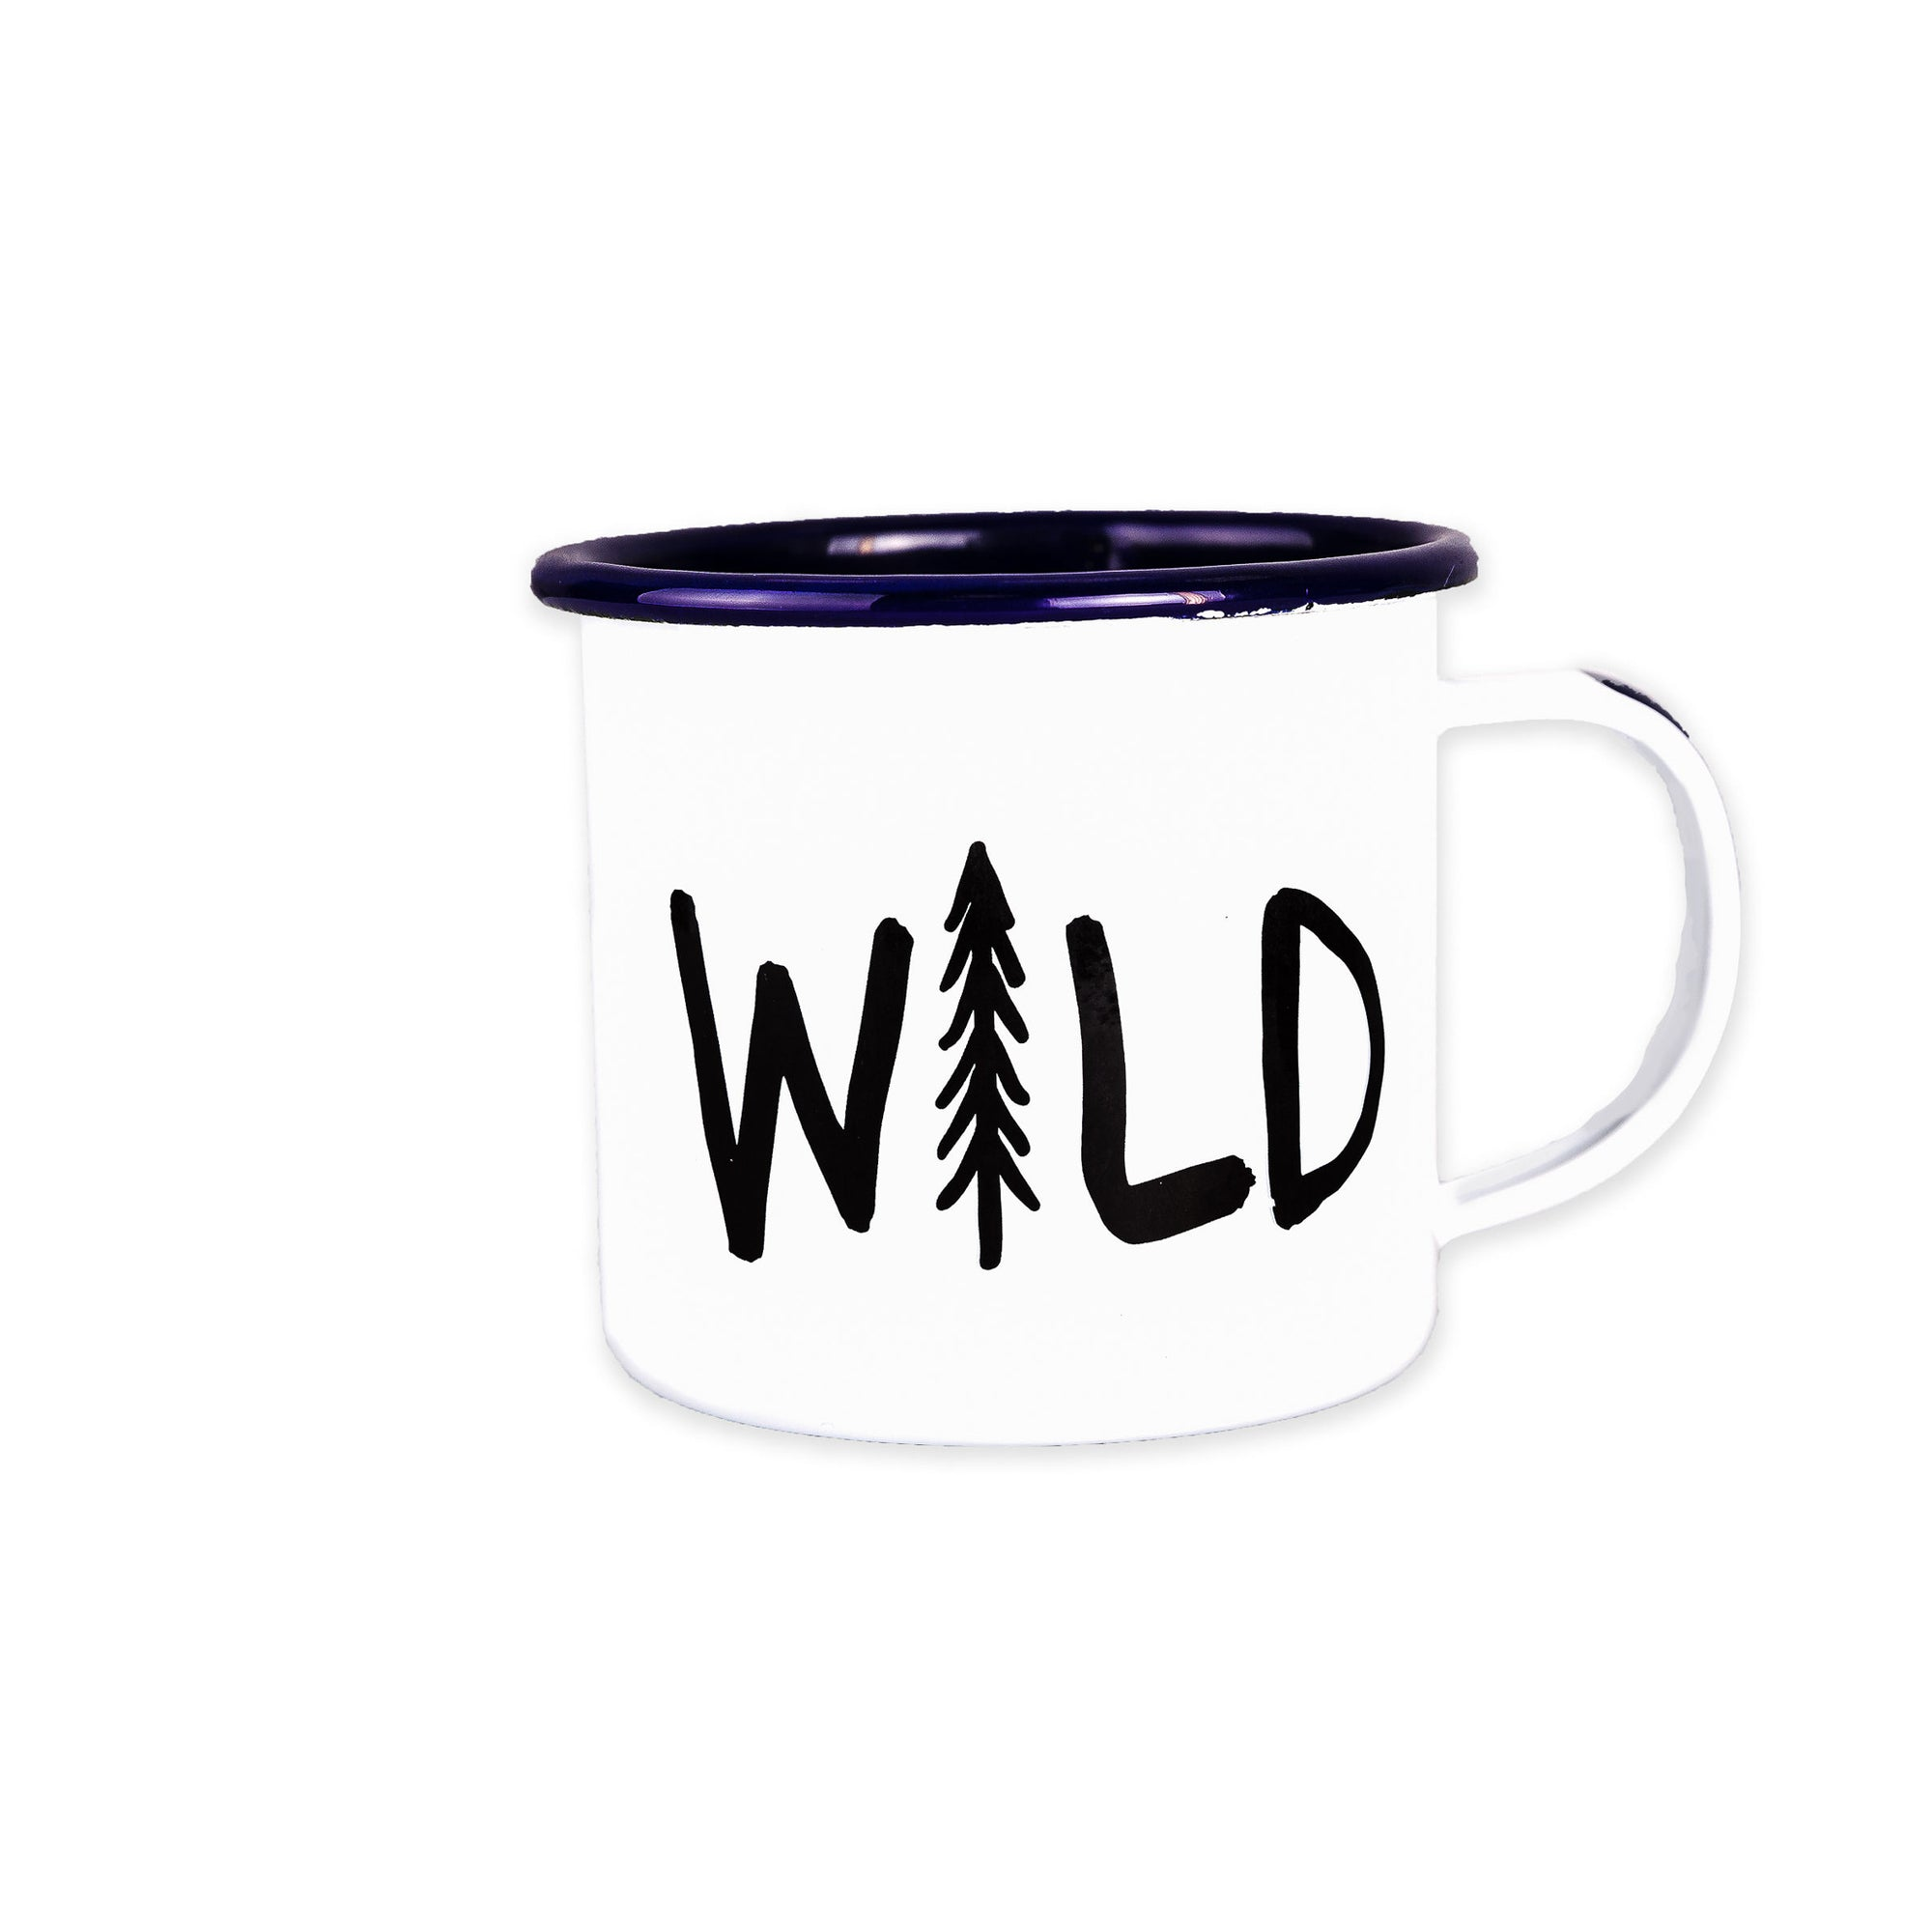 Stay Wild Enamel Mug, 16-Ounce Enamelware Enamel Co - ROVE AND SWIG